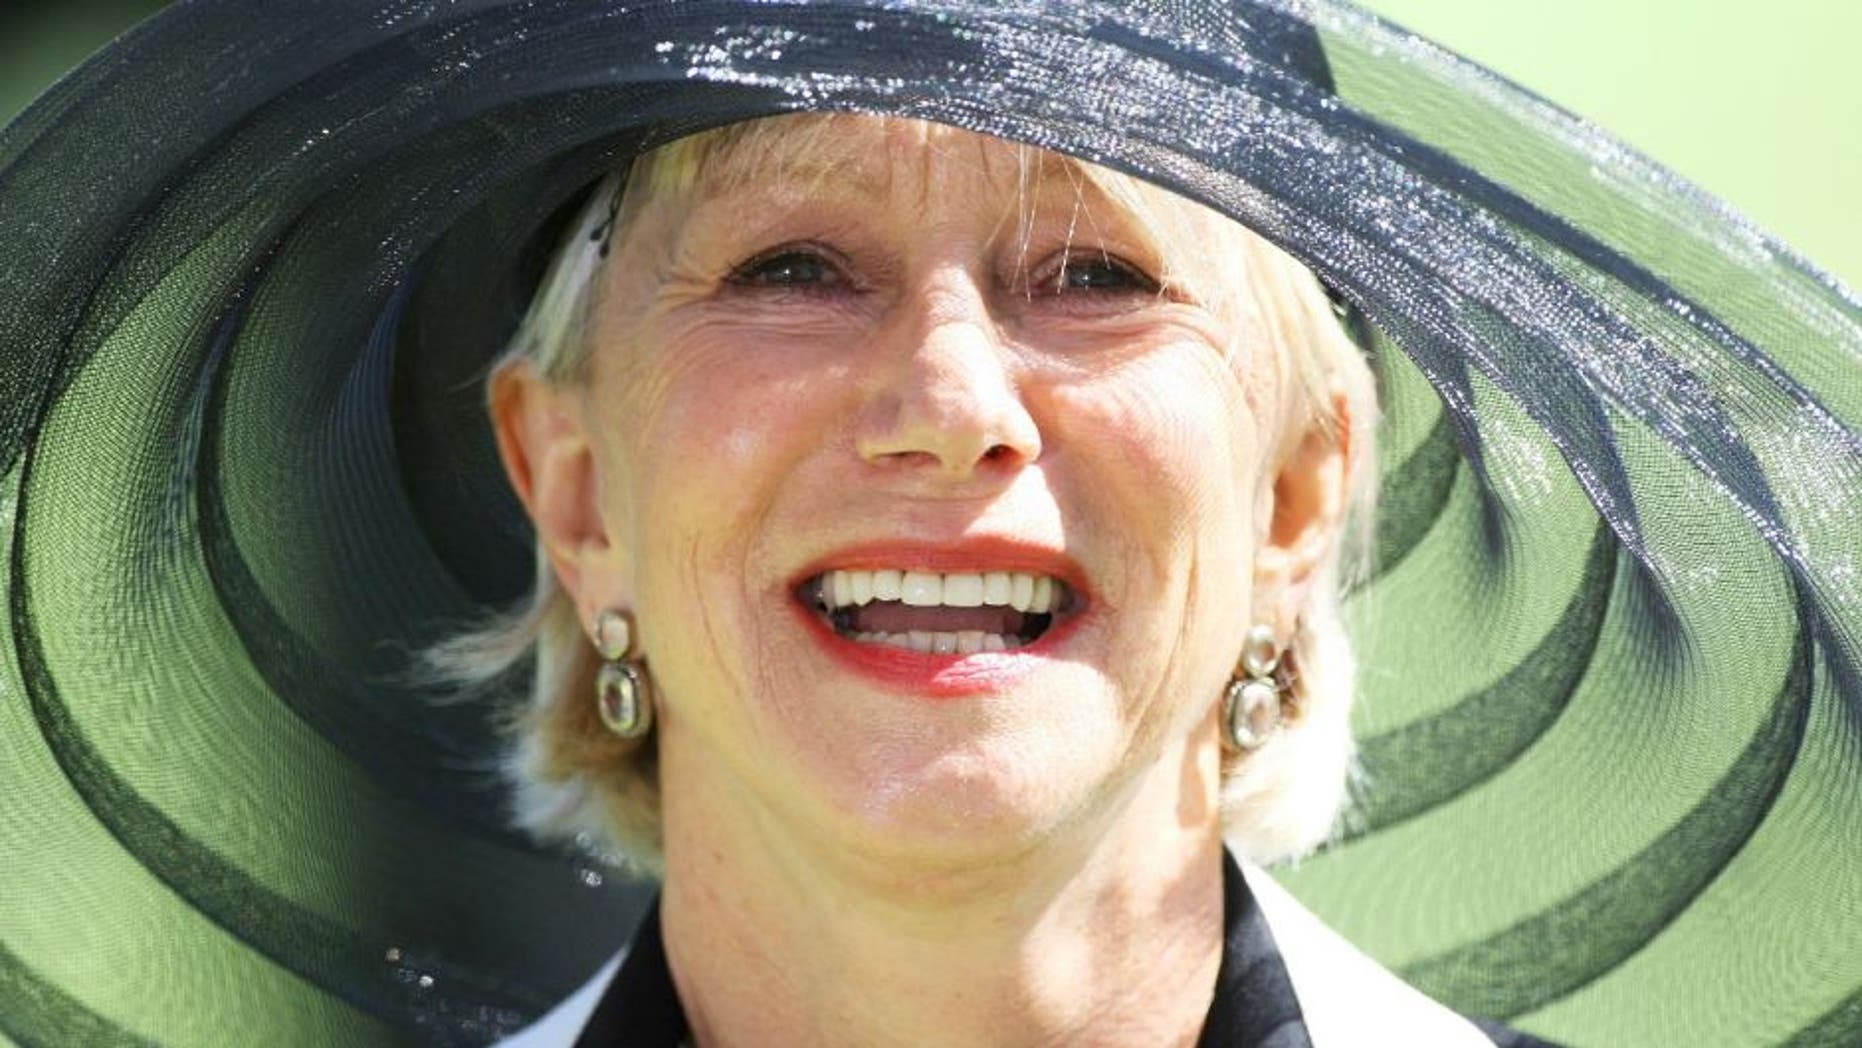 ASCOT, UNITED KINGDOM - JUNE 19: Dame Helen Mirren laughs in the Parade Ring during Ladies Day on June 19, 2008 in Ascot, England. (Photo by Chris Jackson/Getty Images)